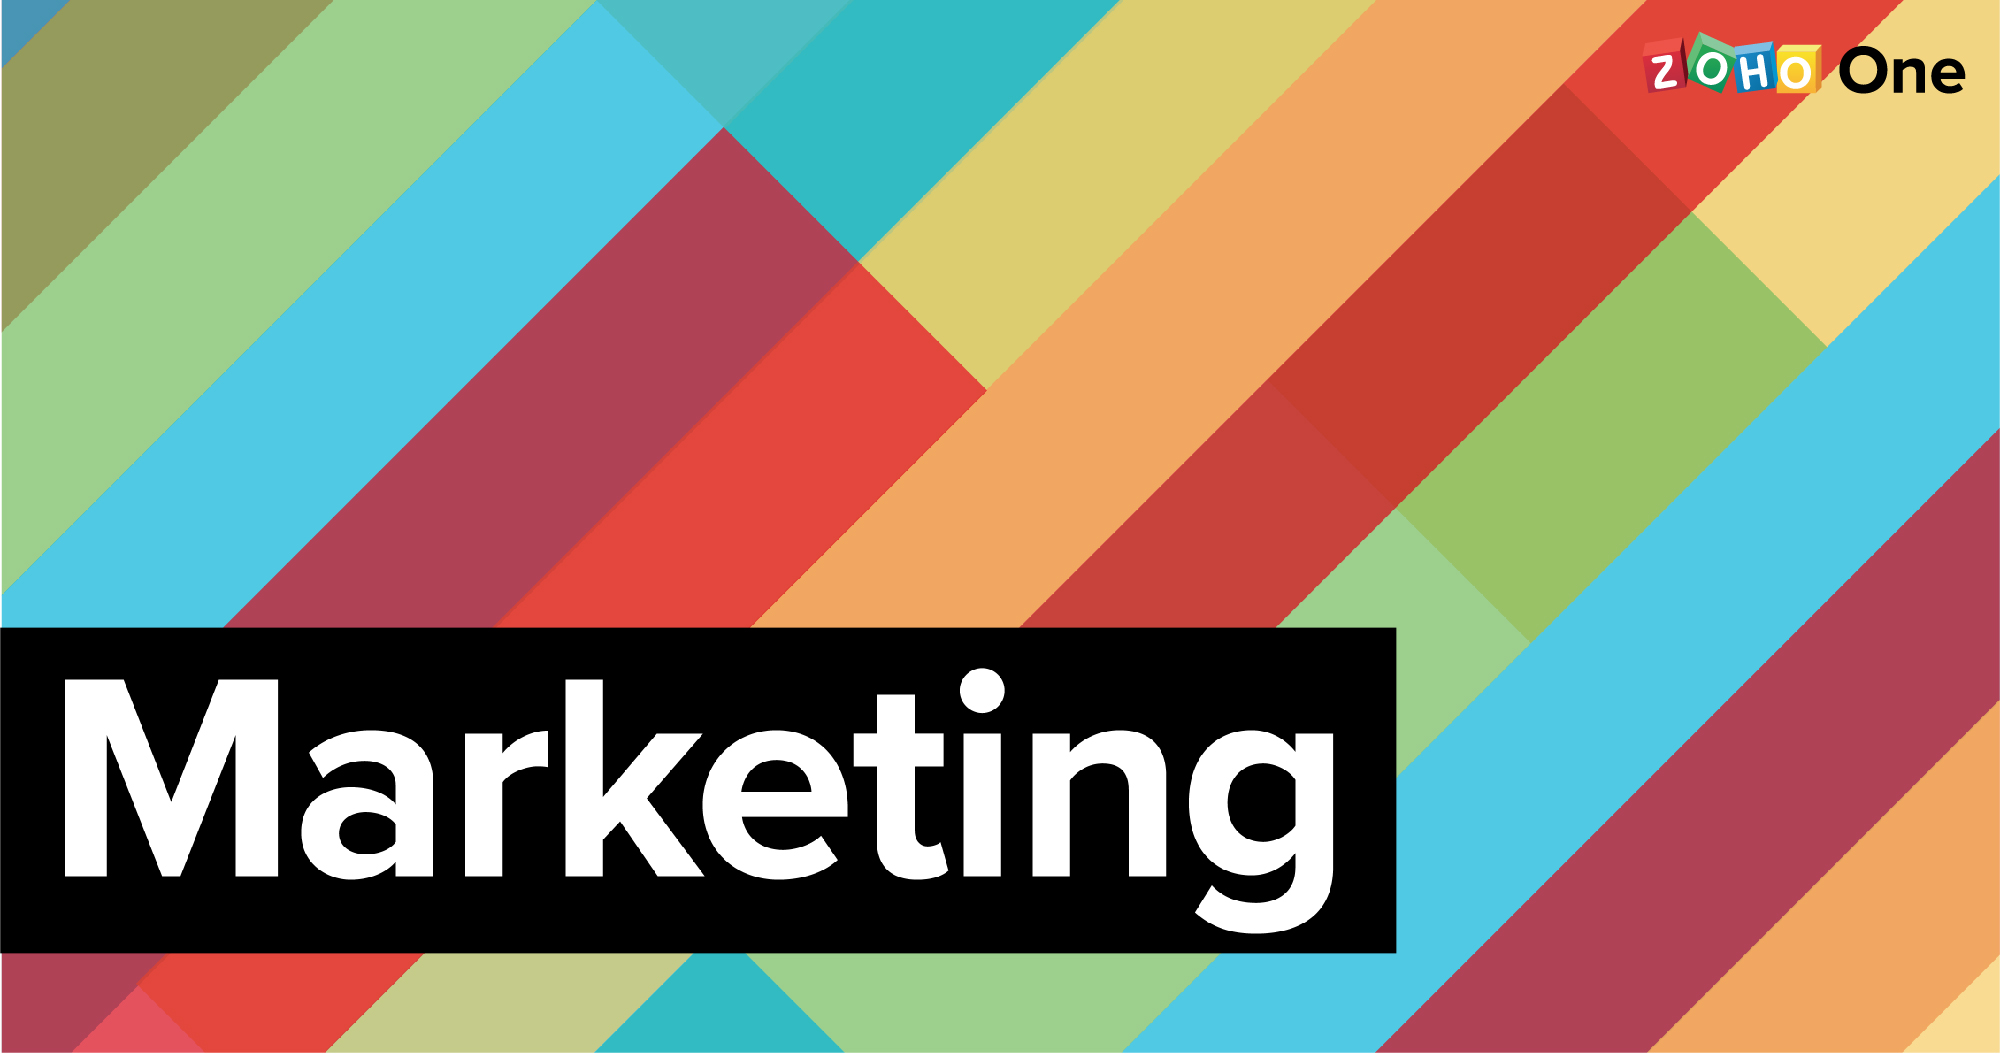 Marketing tools to help optimize your emails, booths, billboards, and beyond.